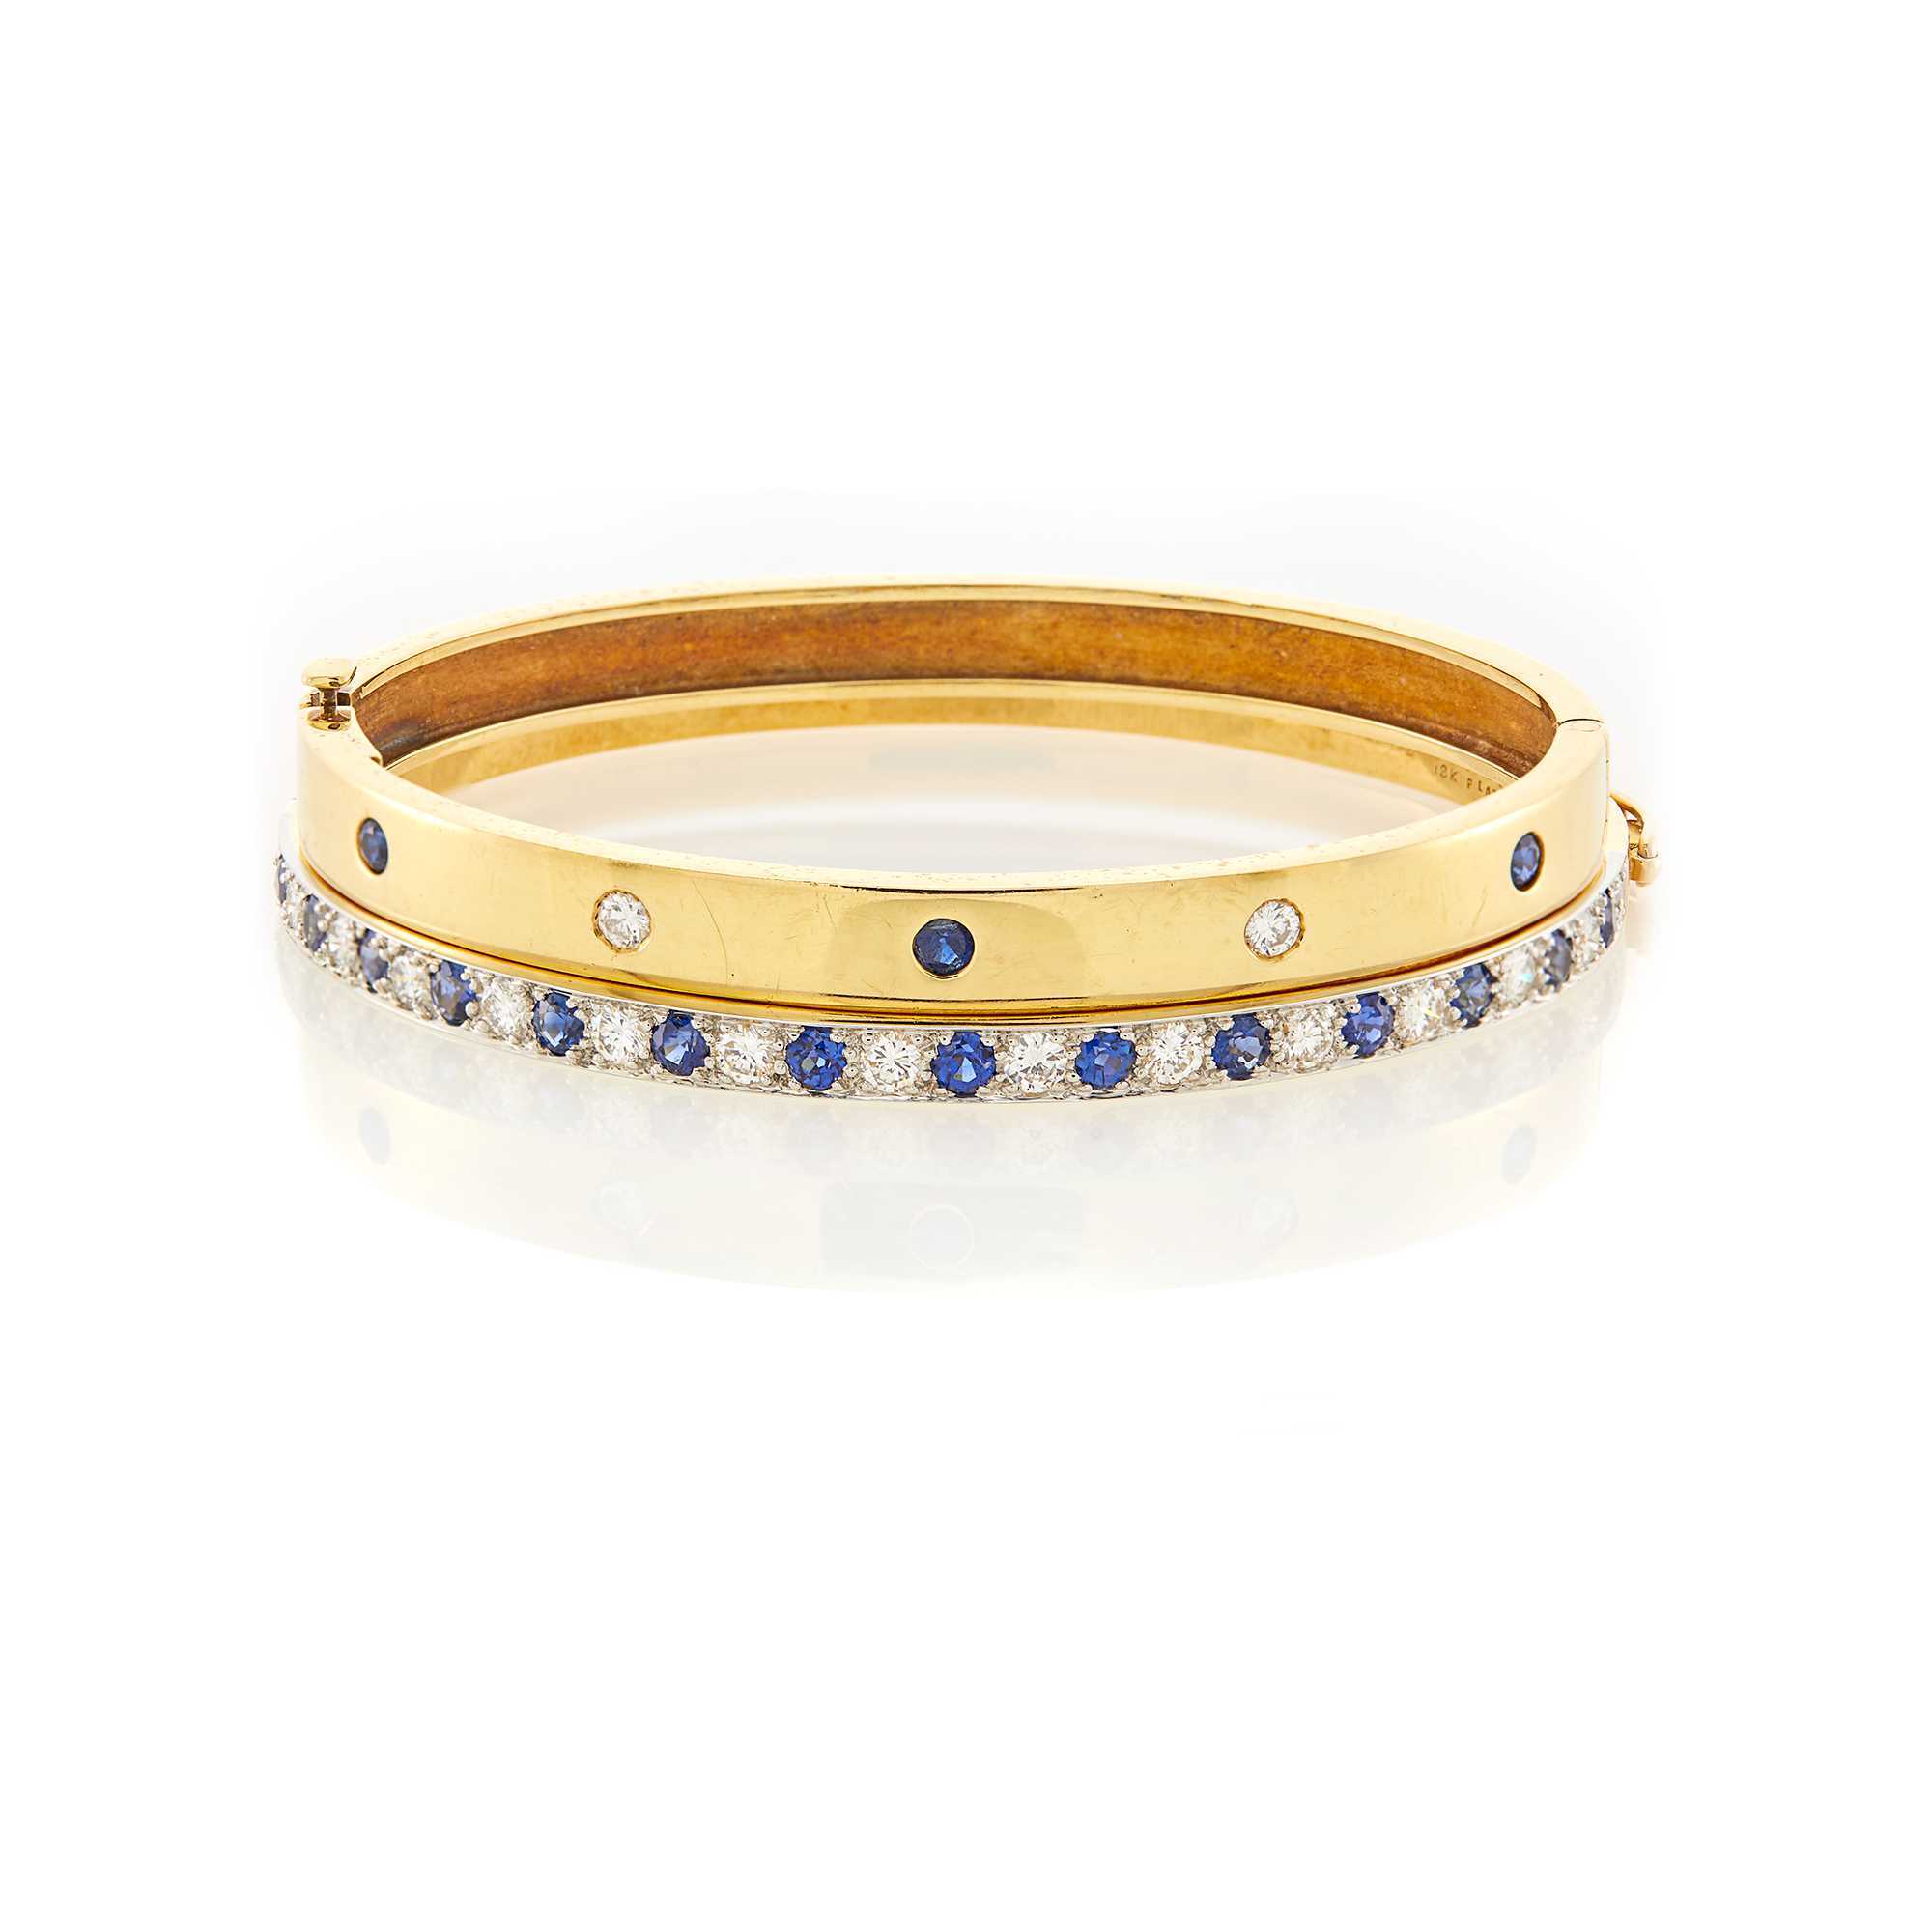 Lot image - Cartier Gold, Sapphire and Diamond Bangle Bracelet and Gold, Platinum, Diamond and Sapphire Bangle Bracelet